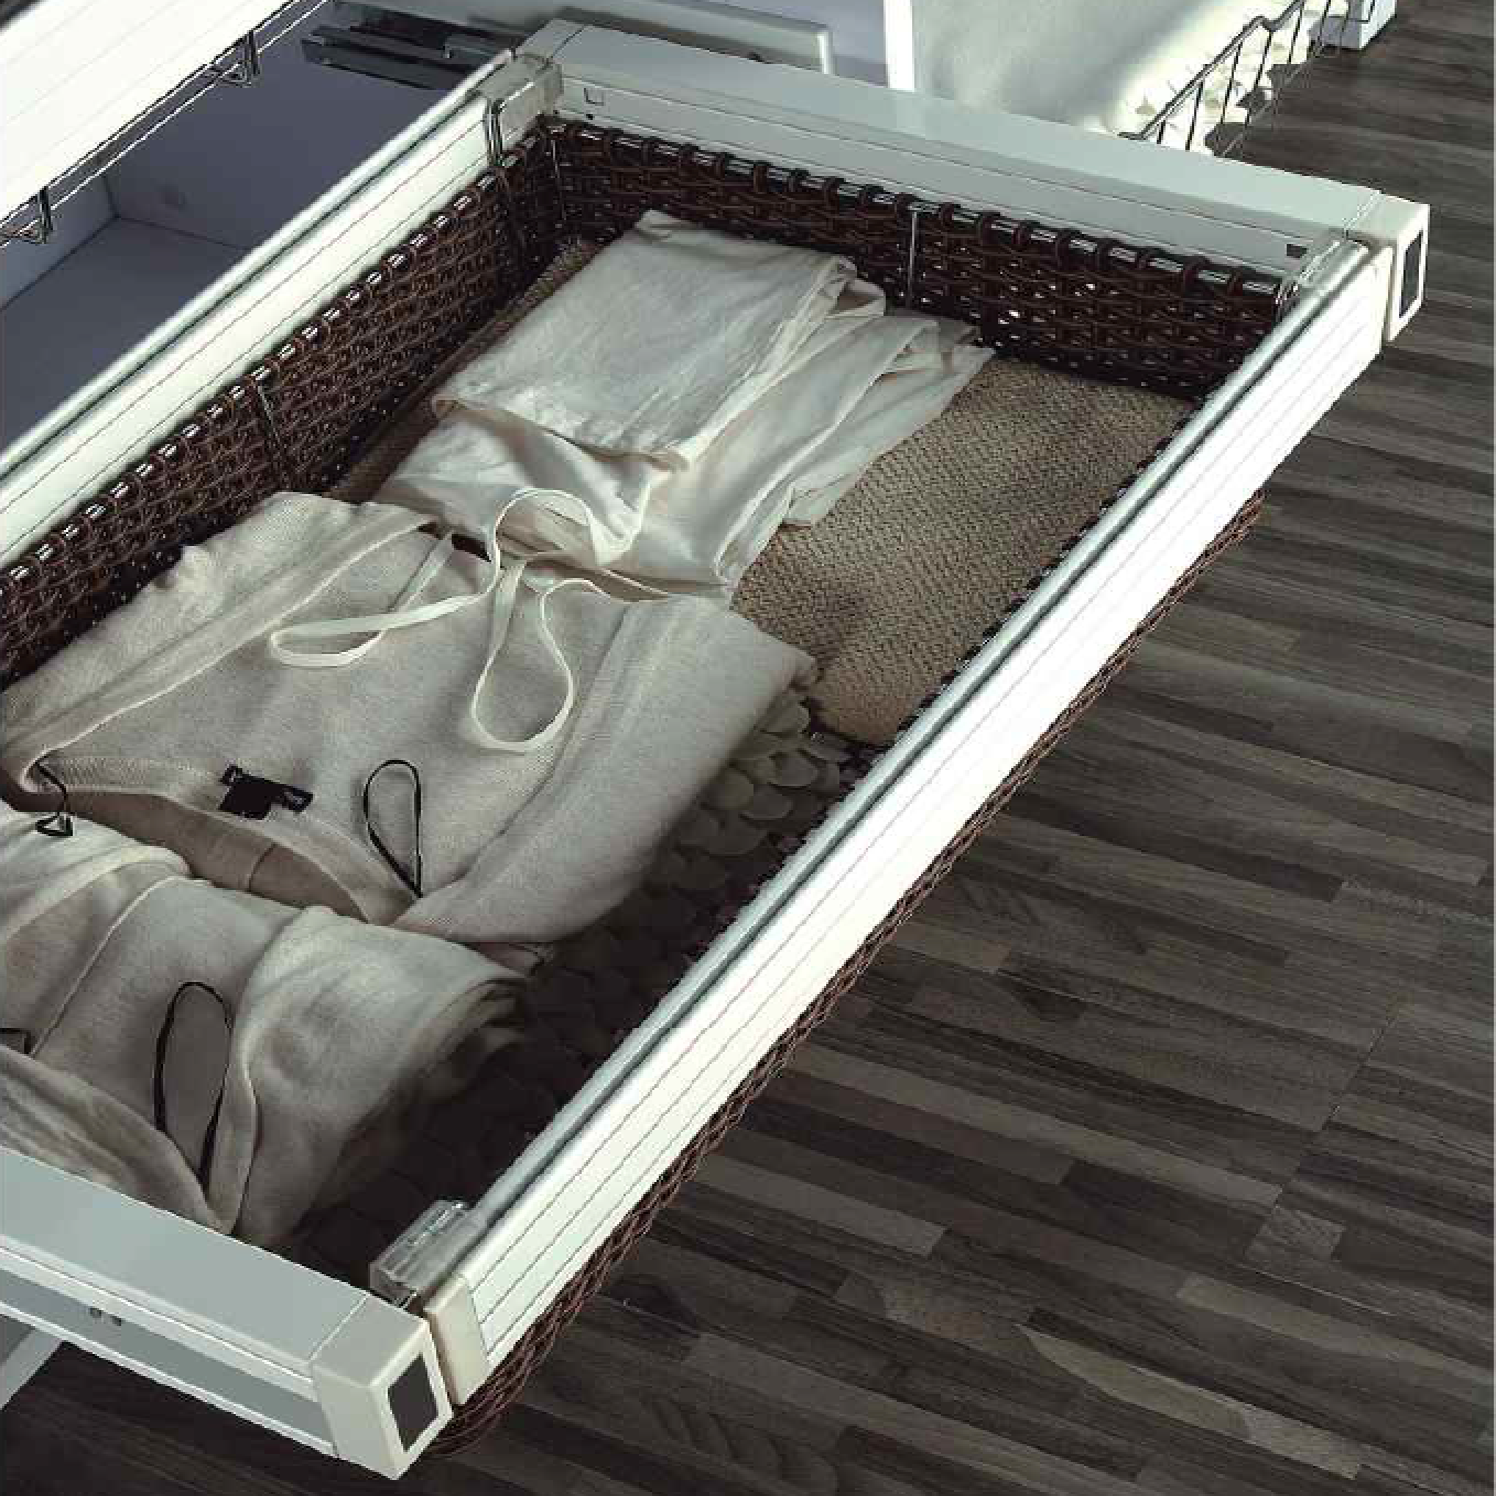 pull-out-wardrobe-basket